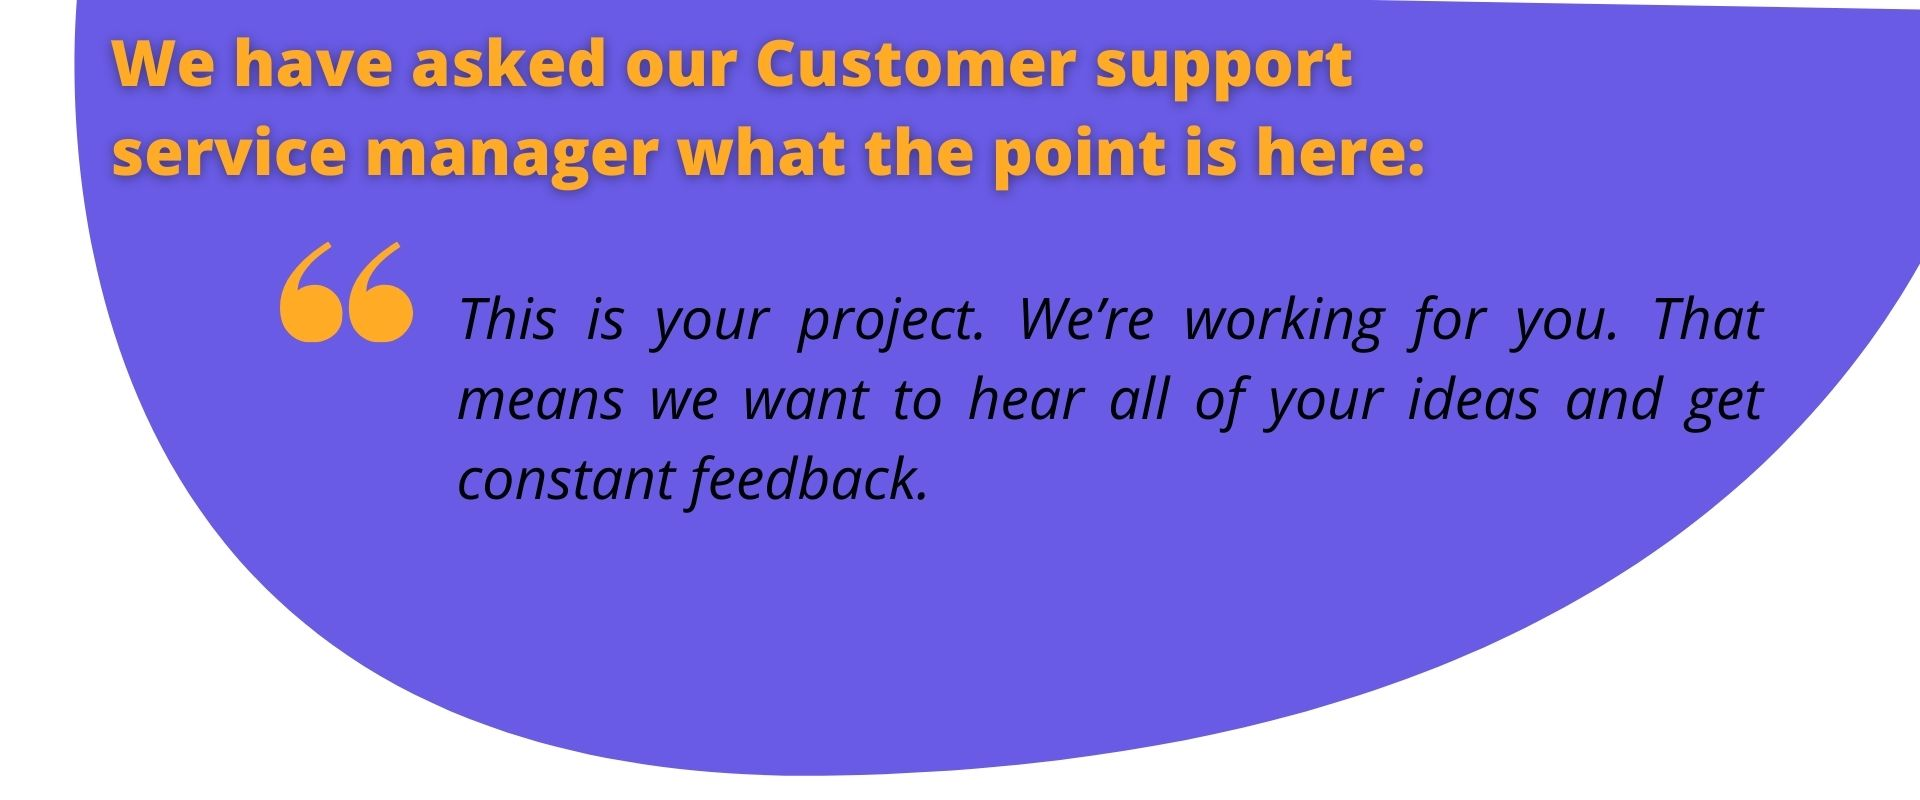 Customer Service Manager Thoughts